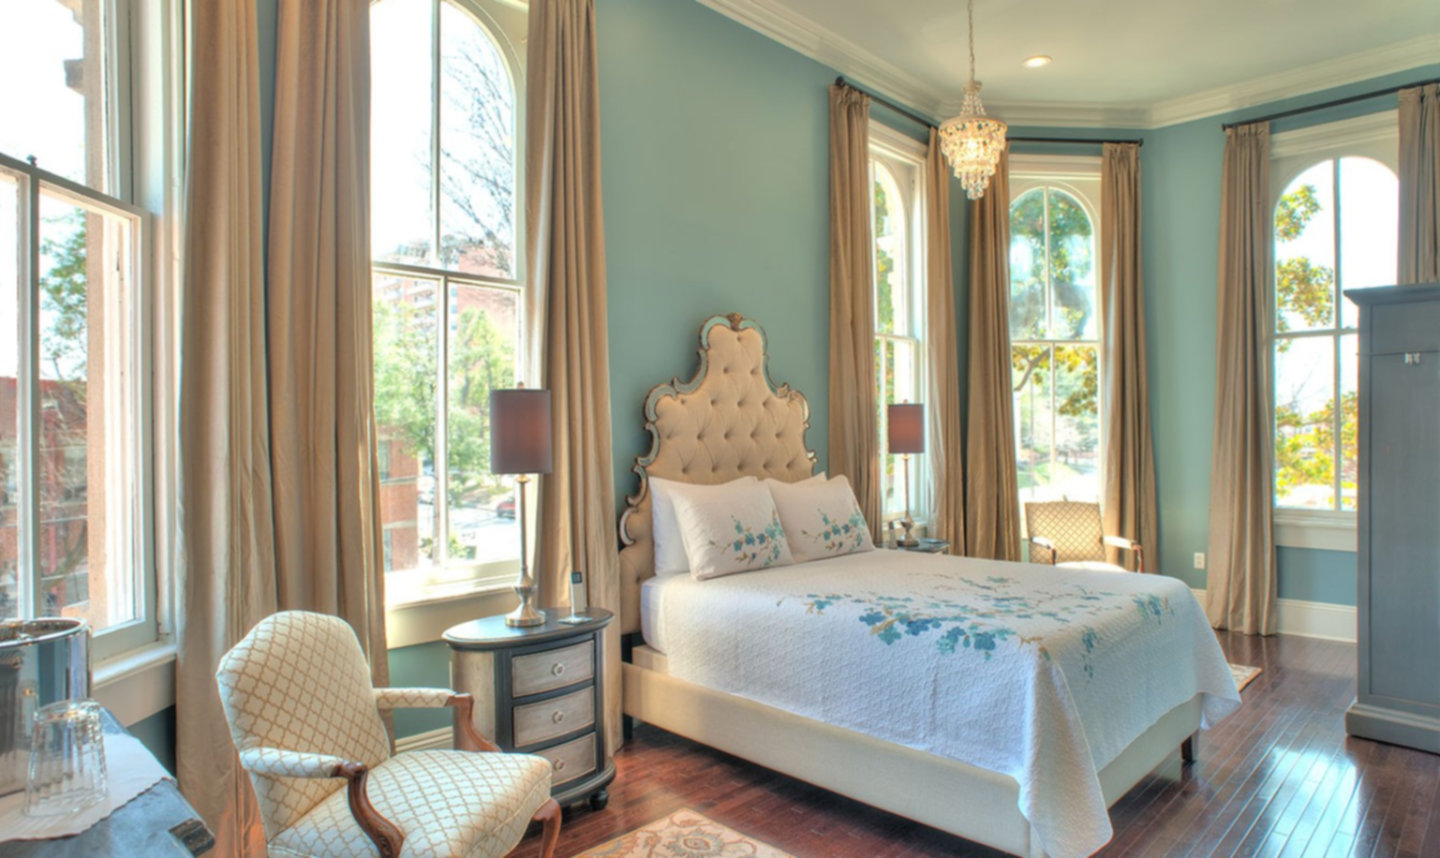 A bedroom with a bed and a large window at The James Lee House.